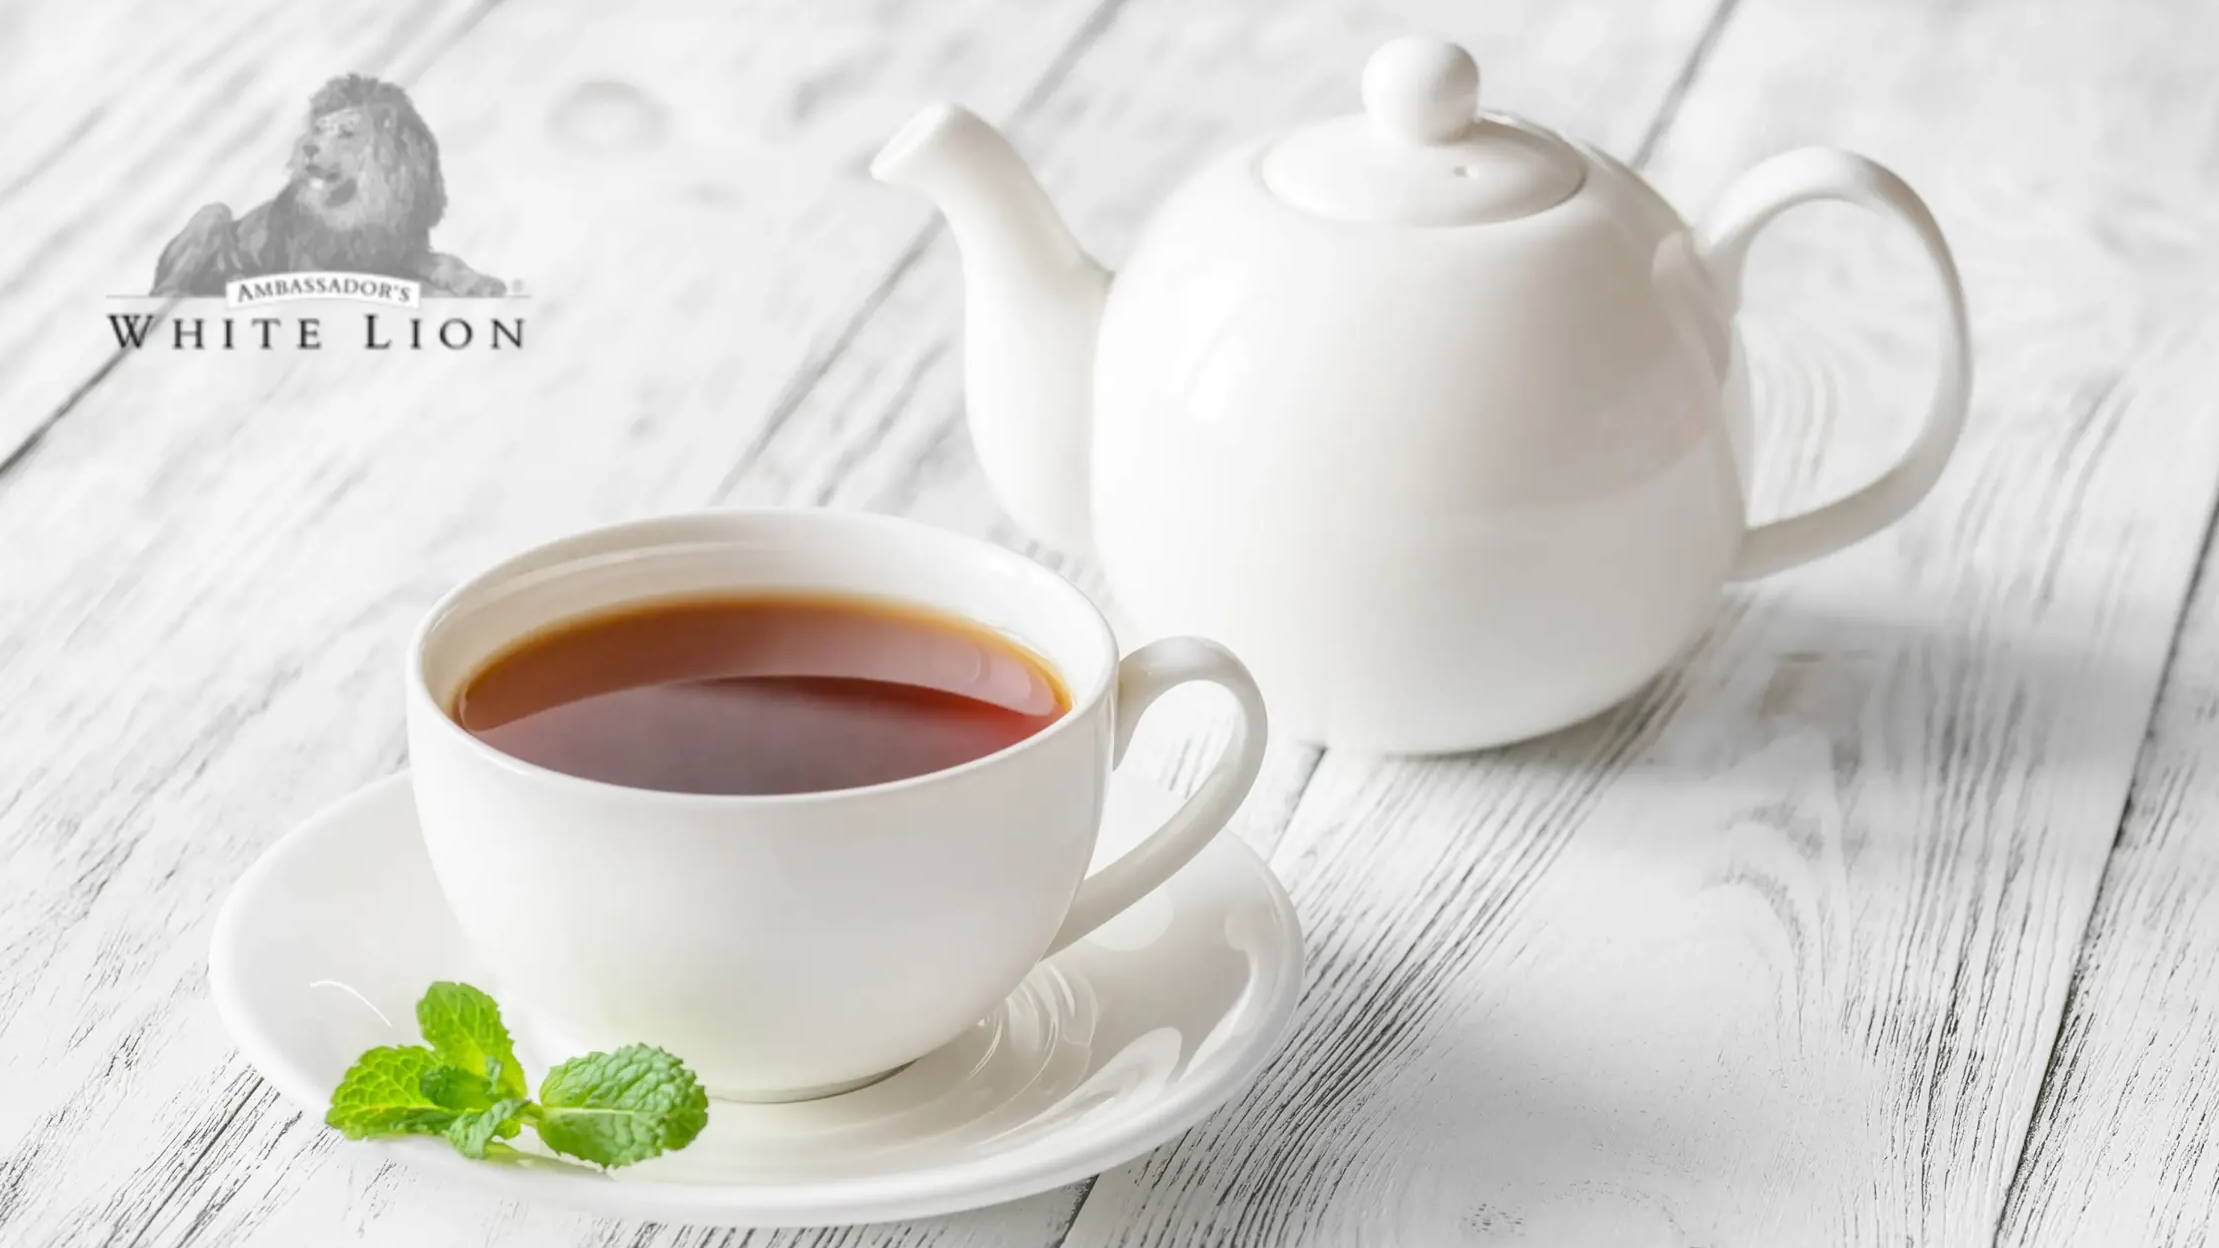 5 Teas Blends Our Customers Rave About